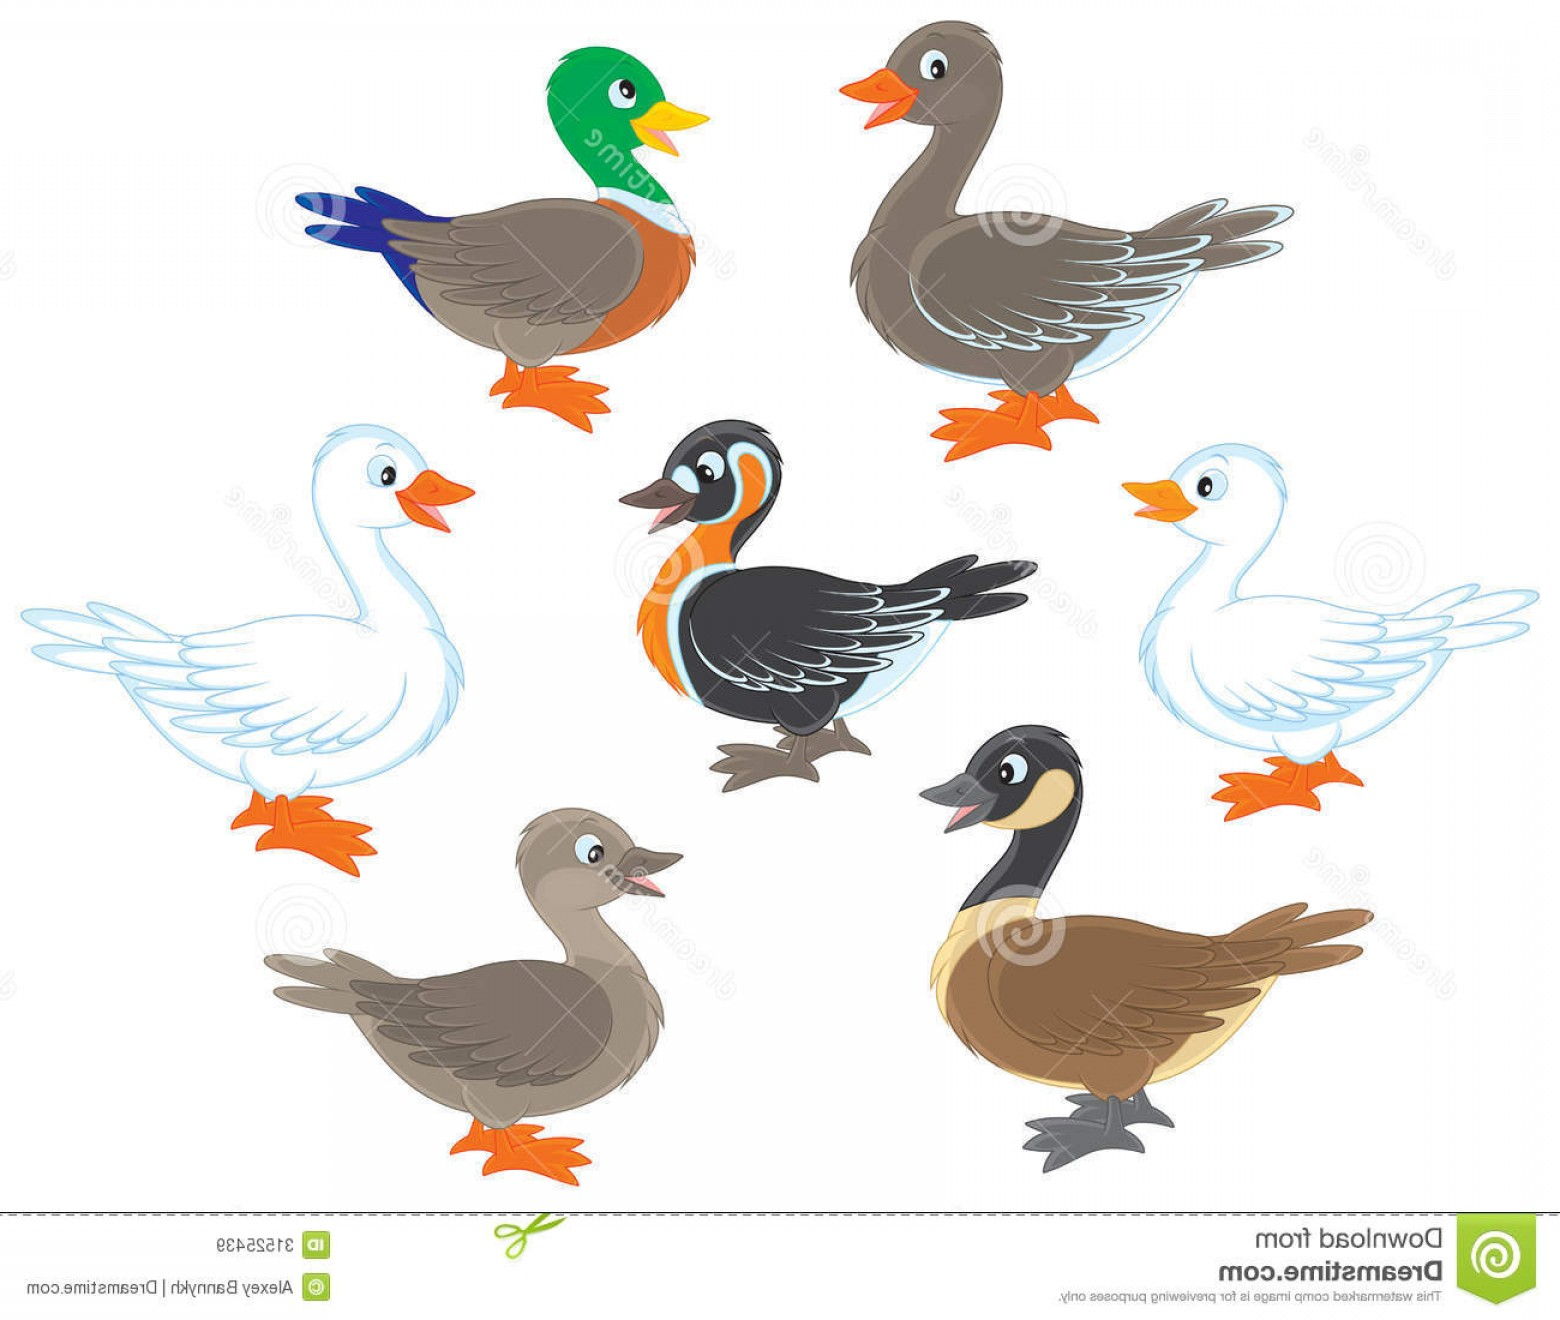 Geese Vector: Royalty Free Stock Images Ducks Geese Several Wild Domestic Birds Vector Illustrations White Background Image